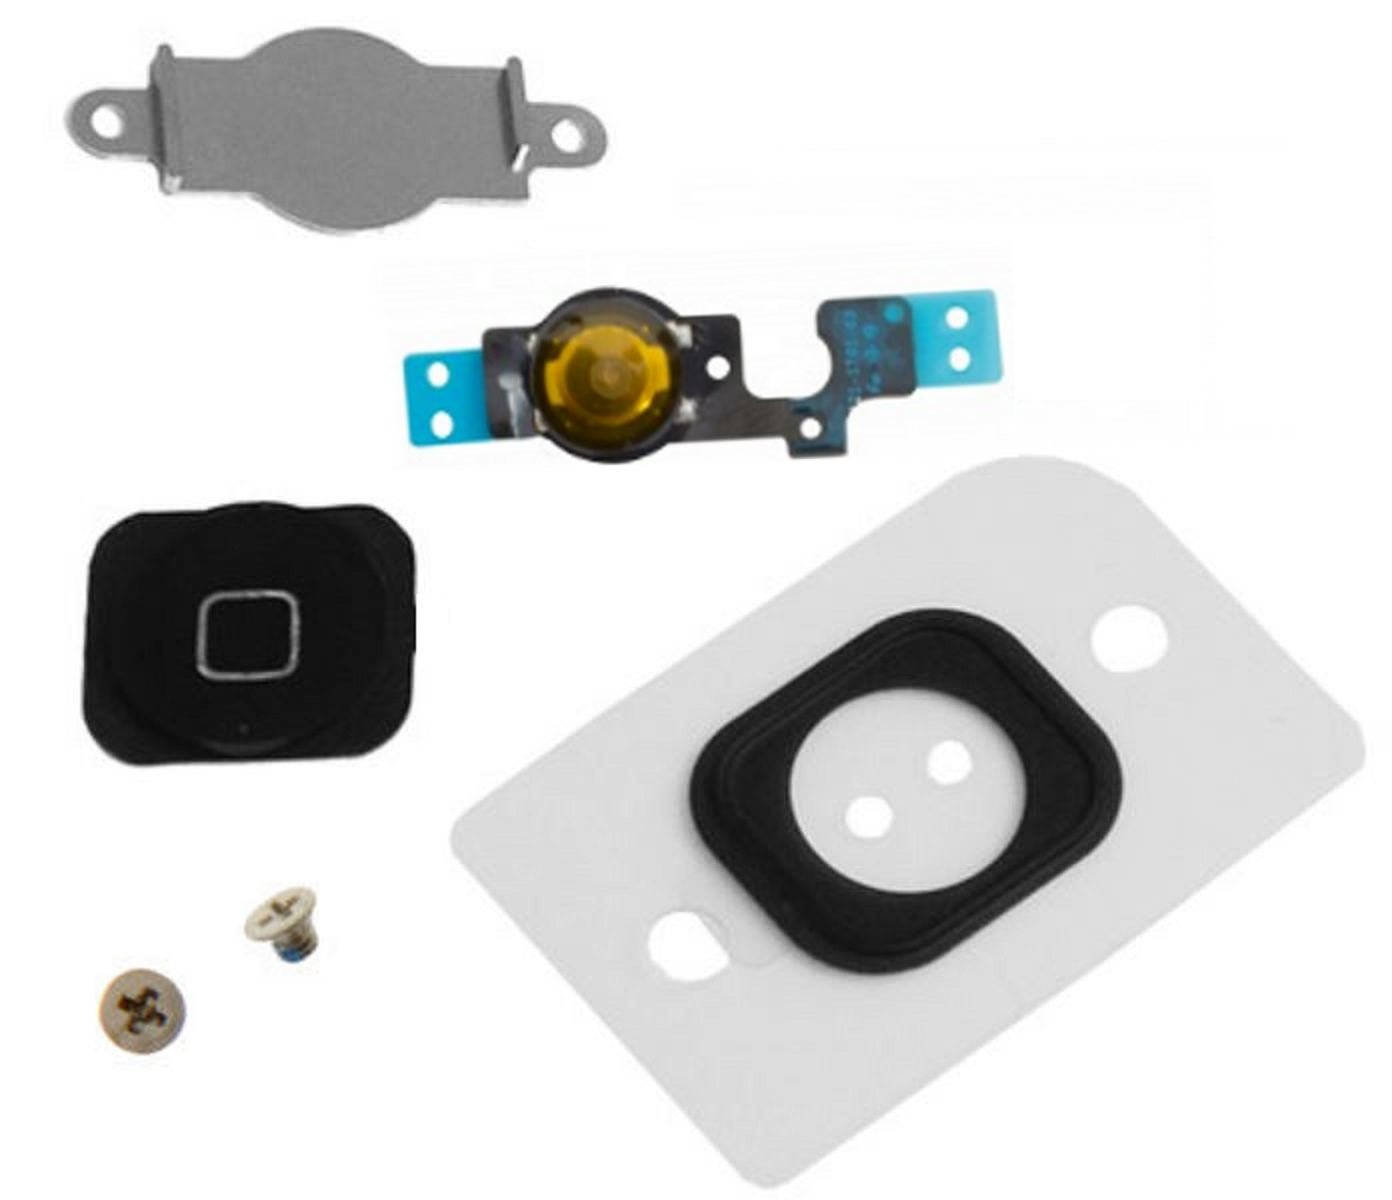 EShine Home Button Replacement Key Cap, Flex Cable, Rubber Gasket, Metal Piece, 2 Screws for iPhone 5C (Black)